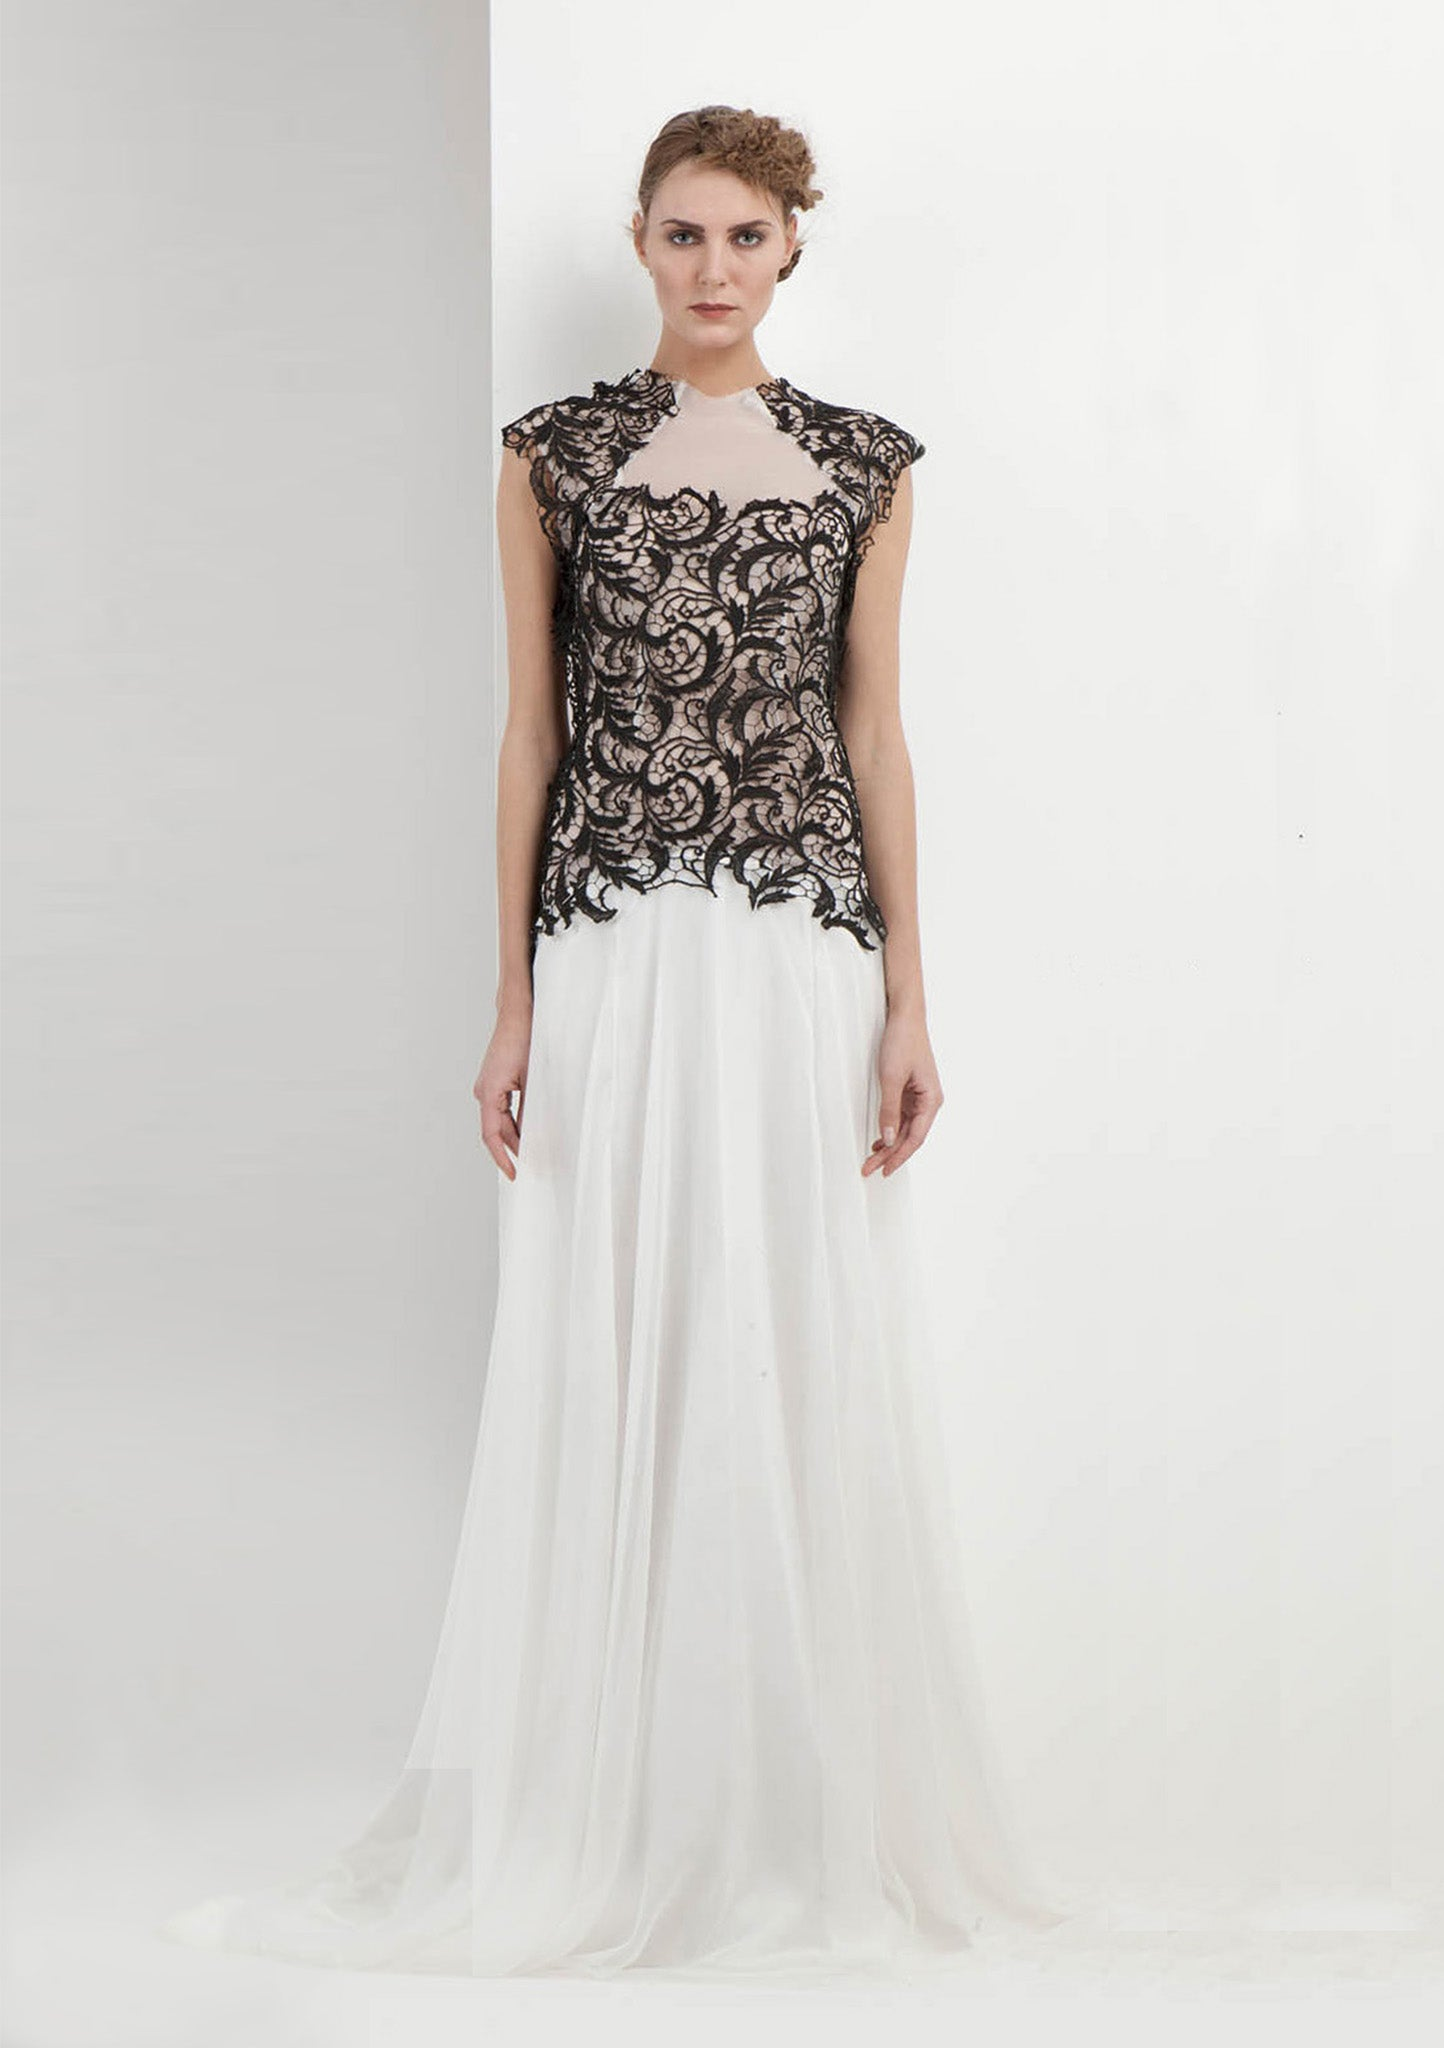 White full-length gown with black lace overlay and short capped lace sleeves